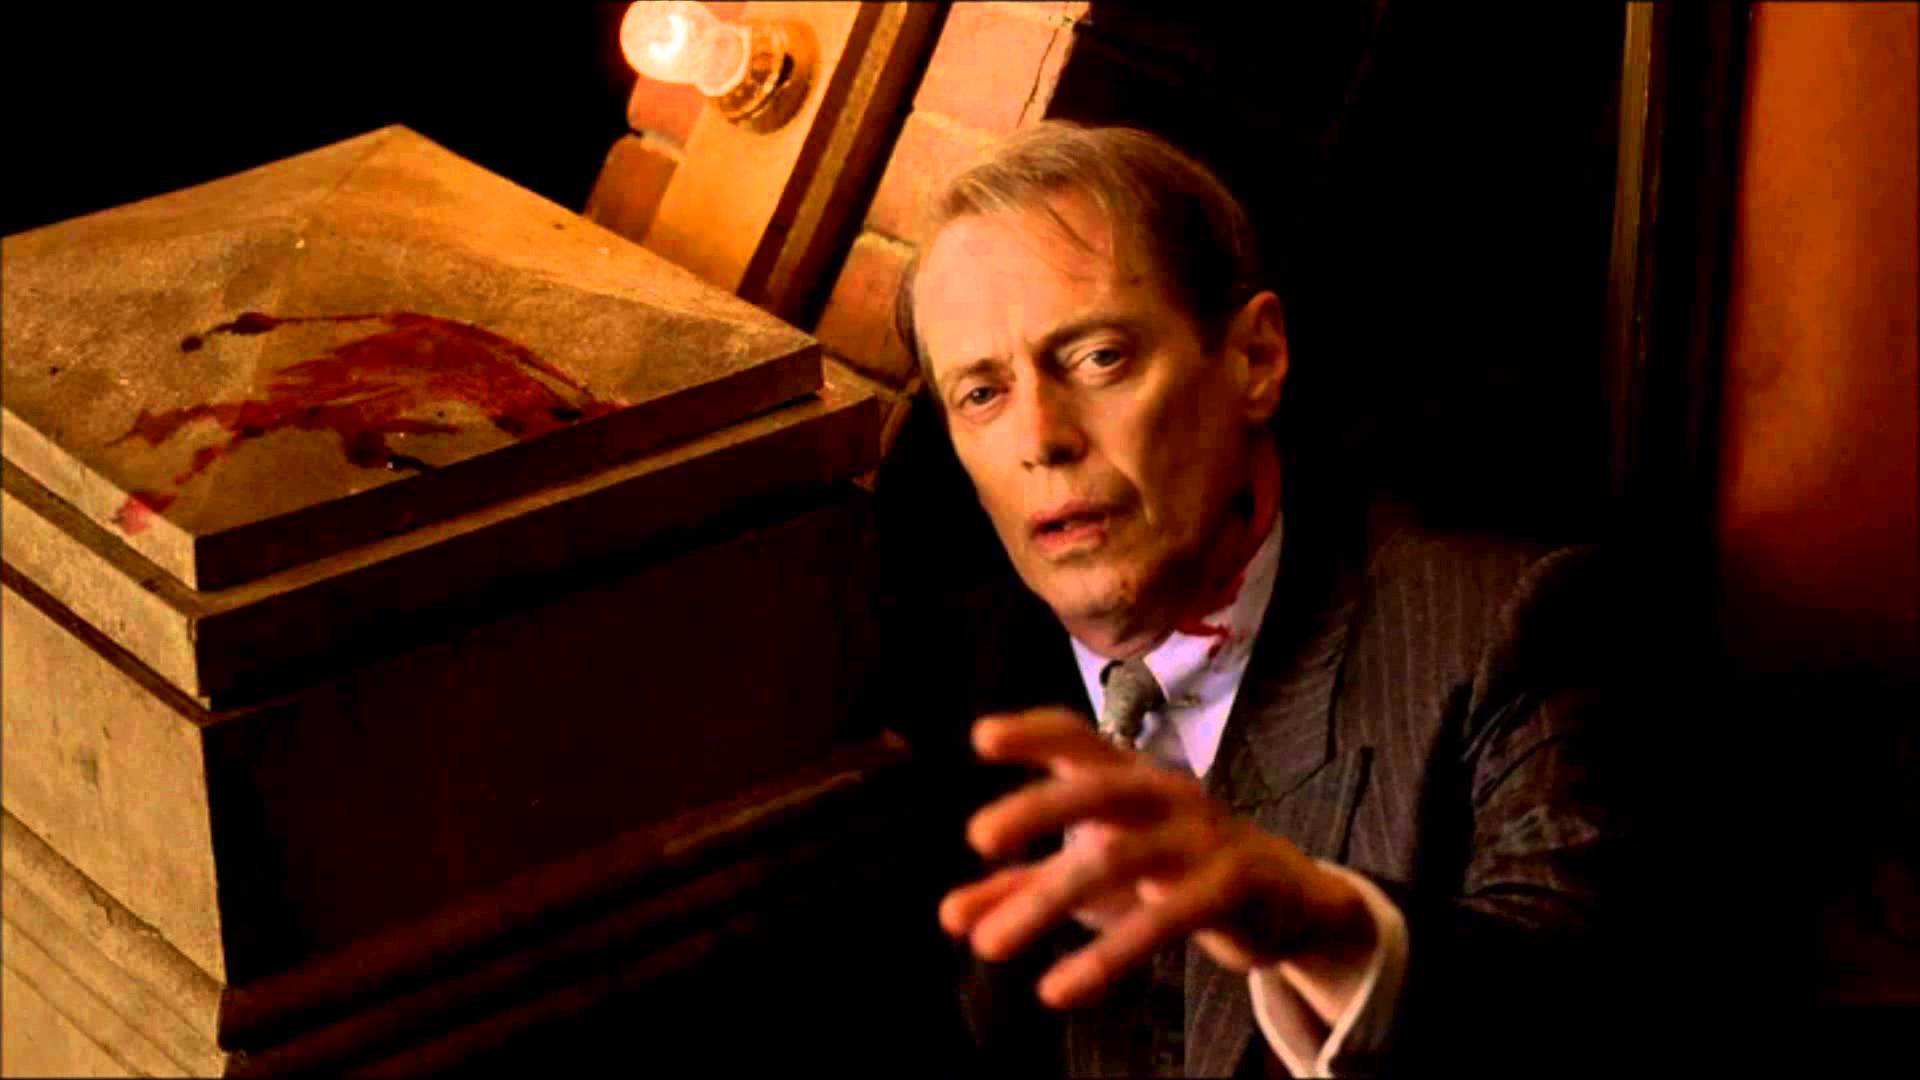 1920x1080 - Nucky Thompson Wallpapers 20